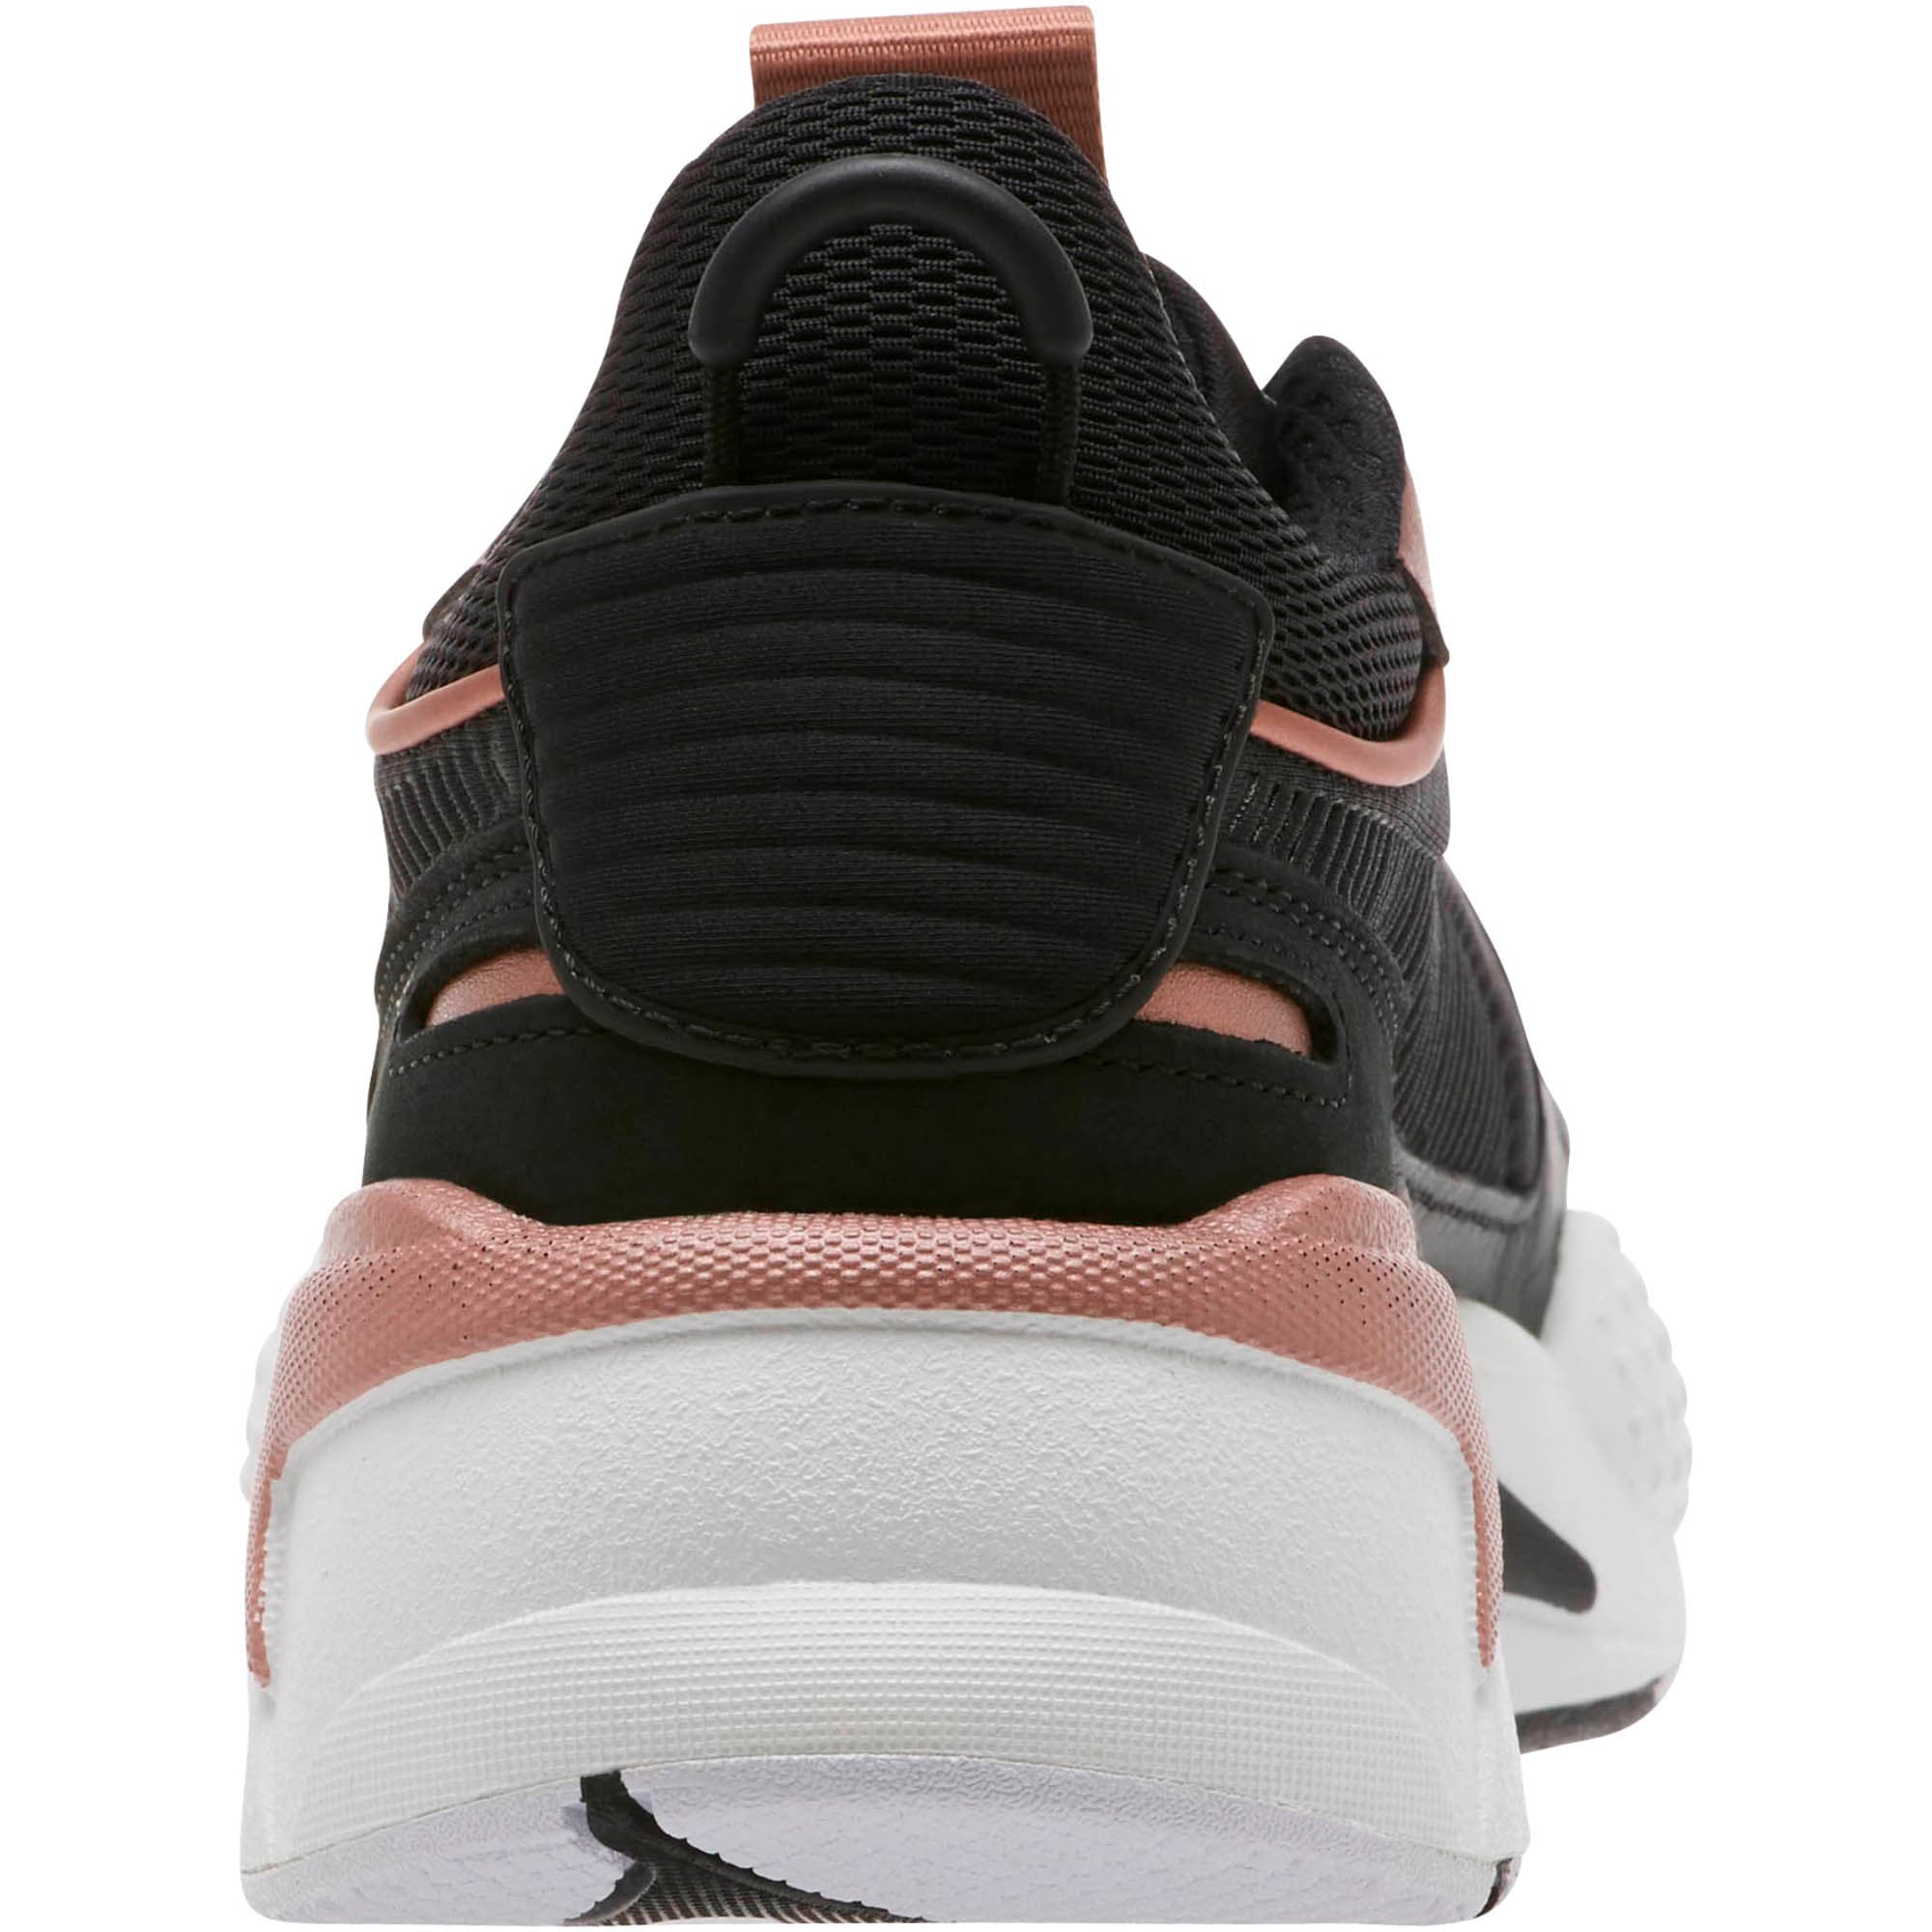 Thumbnail 4 of RS-X Trophy Women's Sneakers, Puma Black-Rose Gold, medium